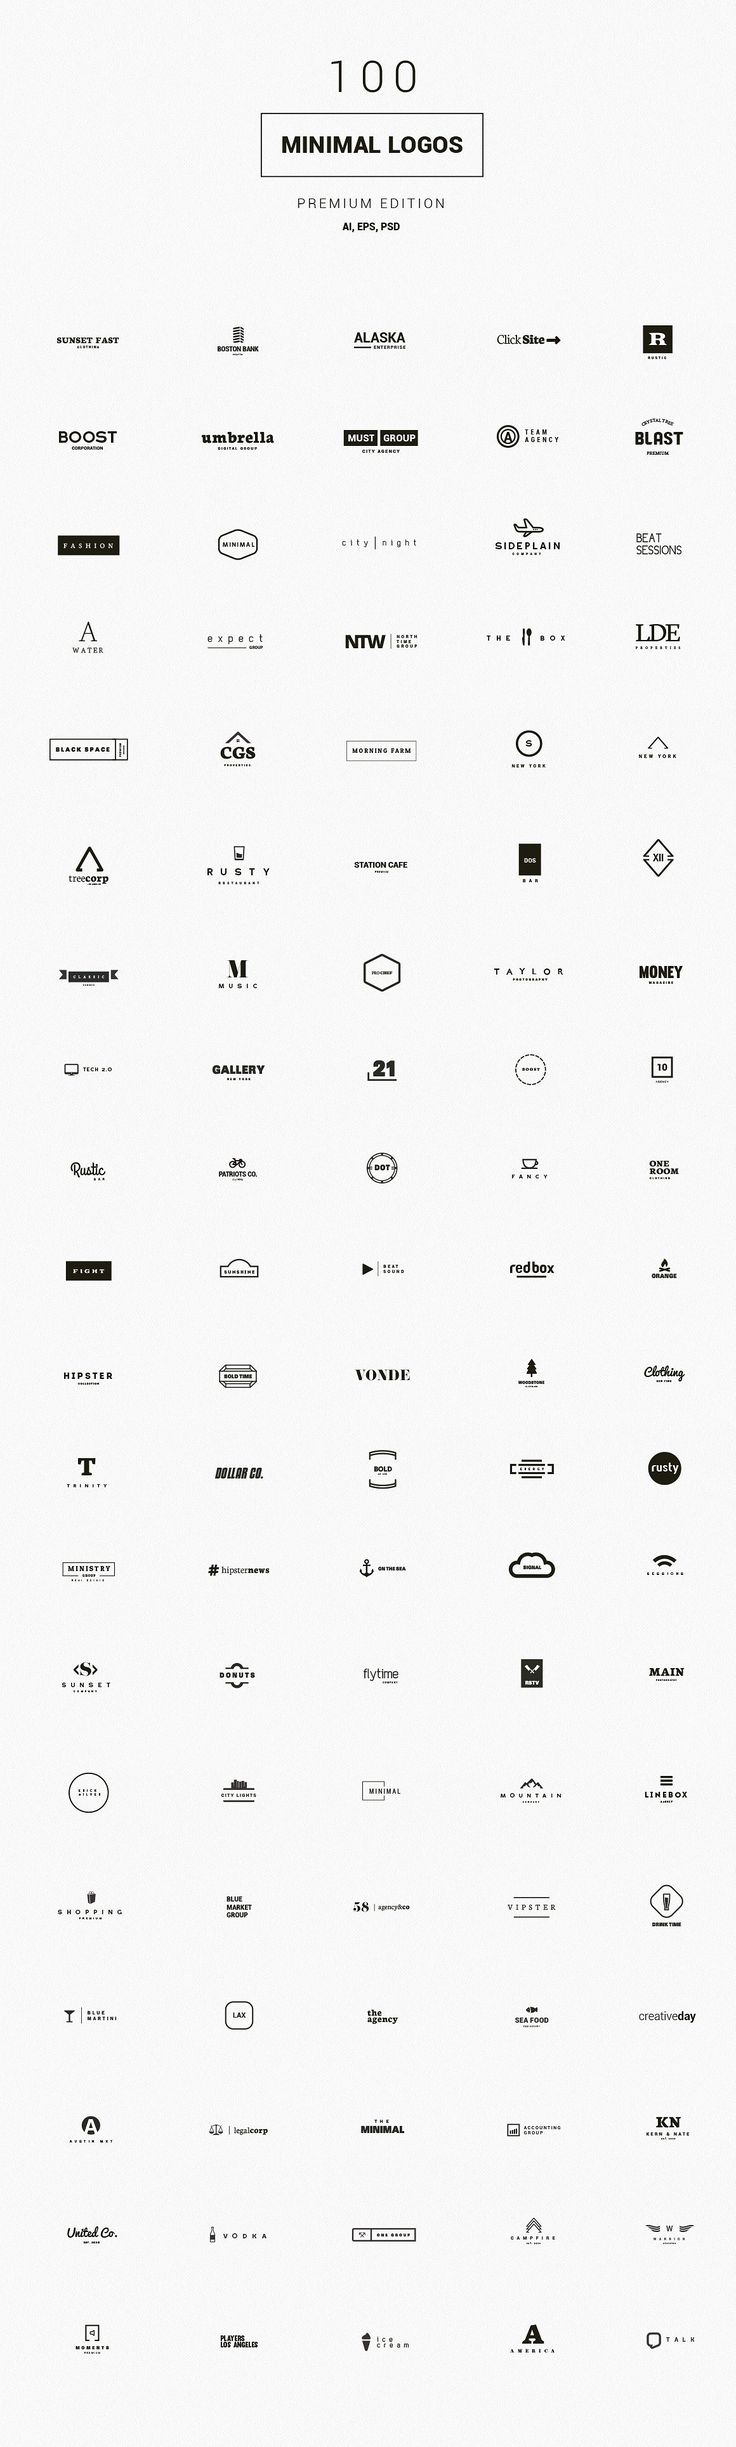 100 Minimal Logos - Premium Kit by DesignDistrict on @creativemarket